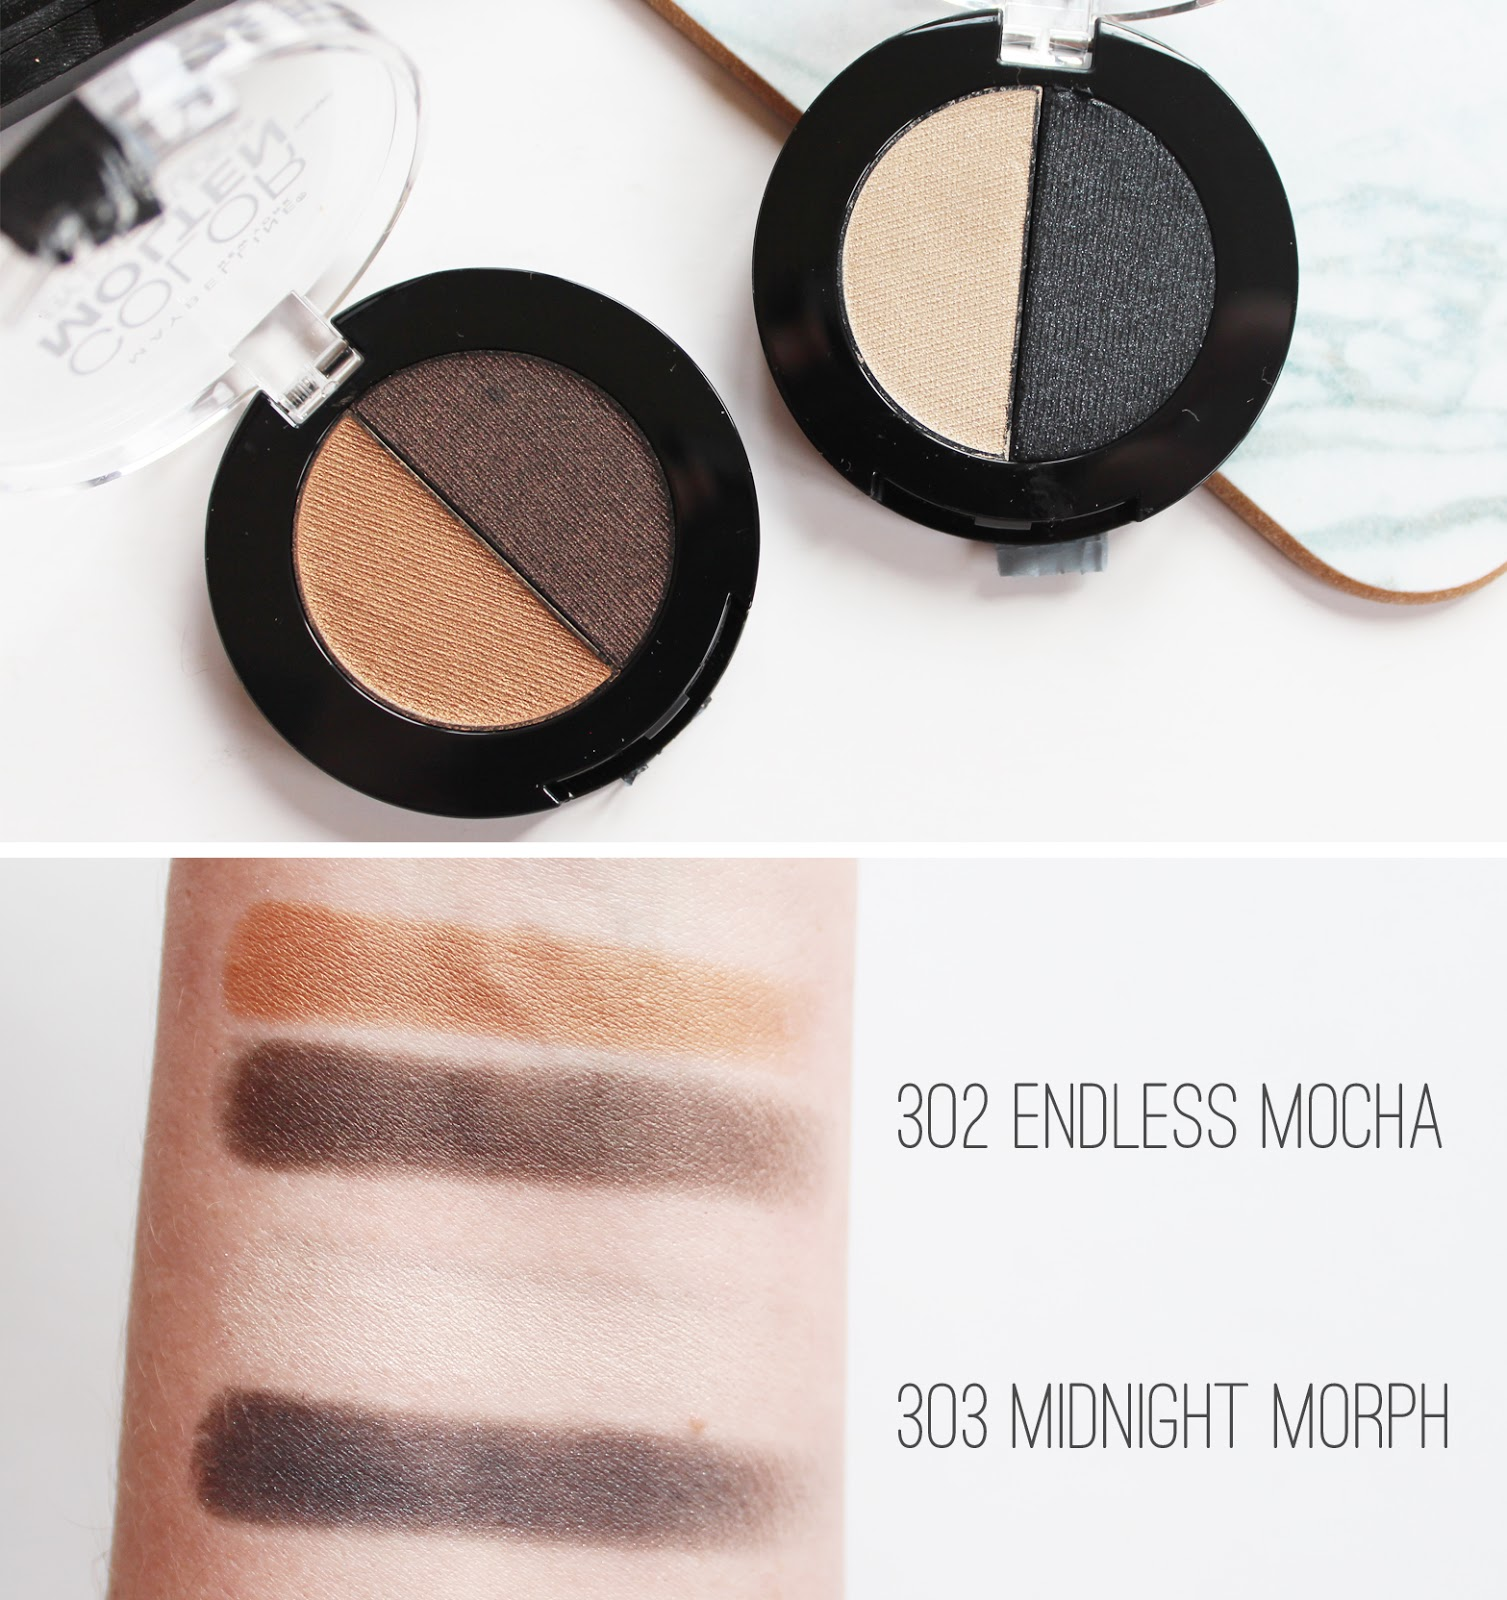 MAYBELLINE | New Releases to NZ - The Nudes Palette + Color Molten Duo Eyeshadows - CassandraMyee